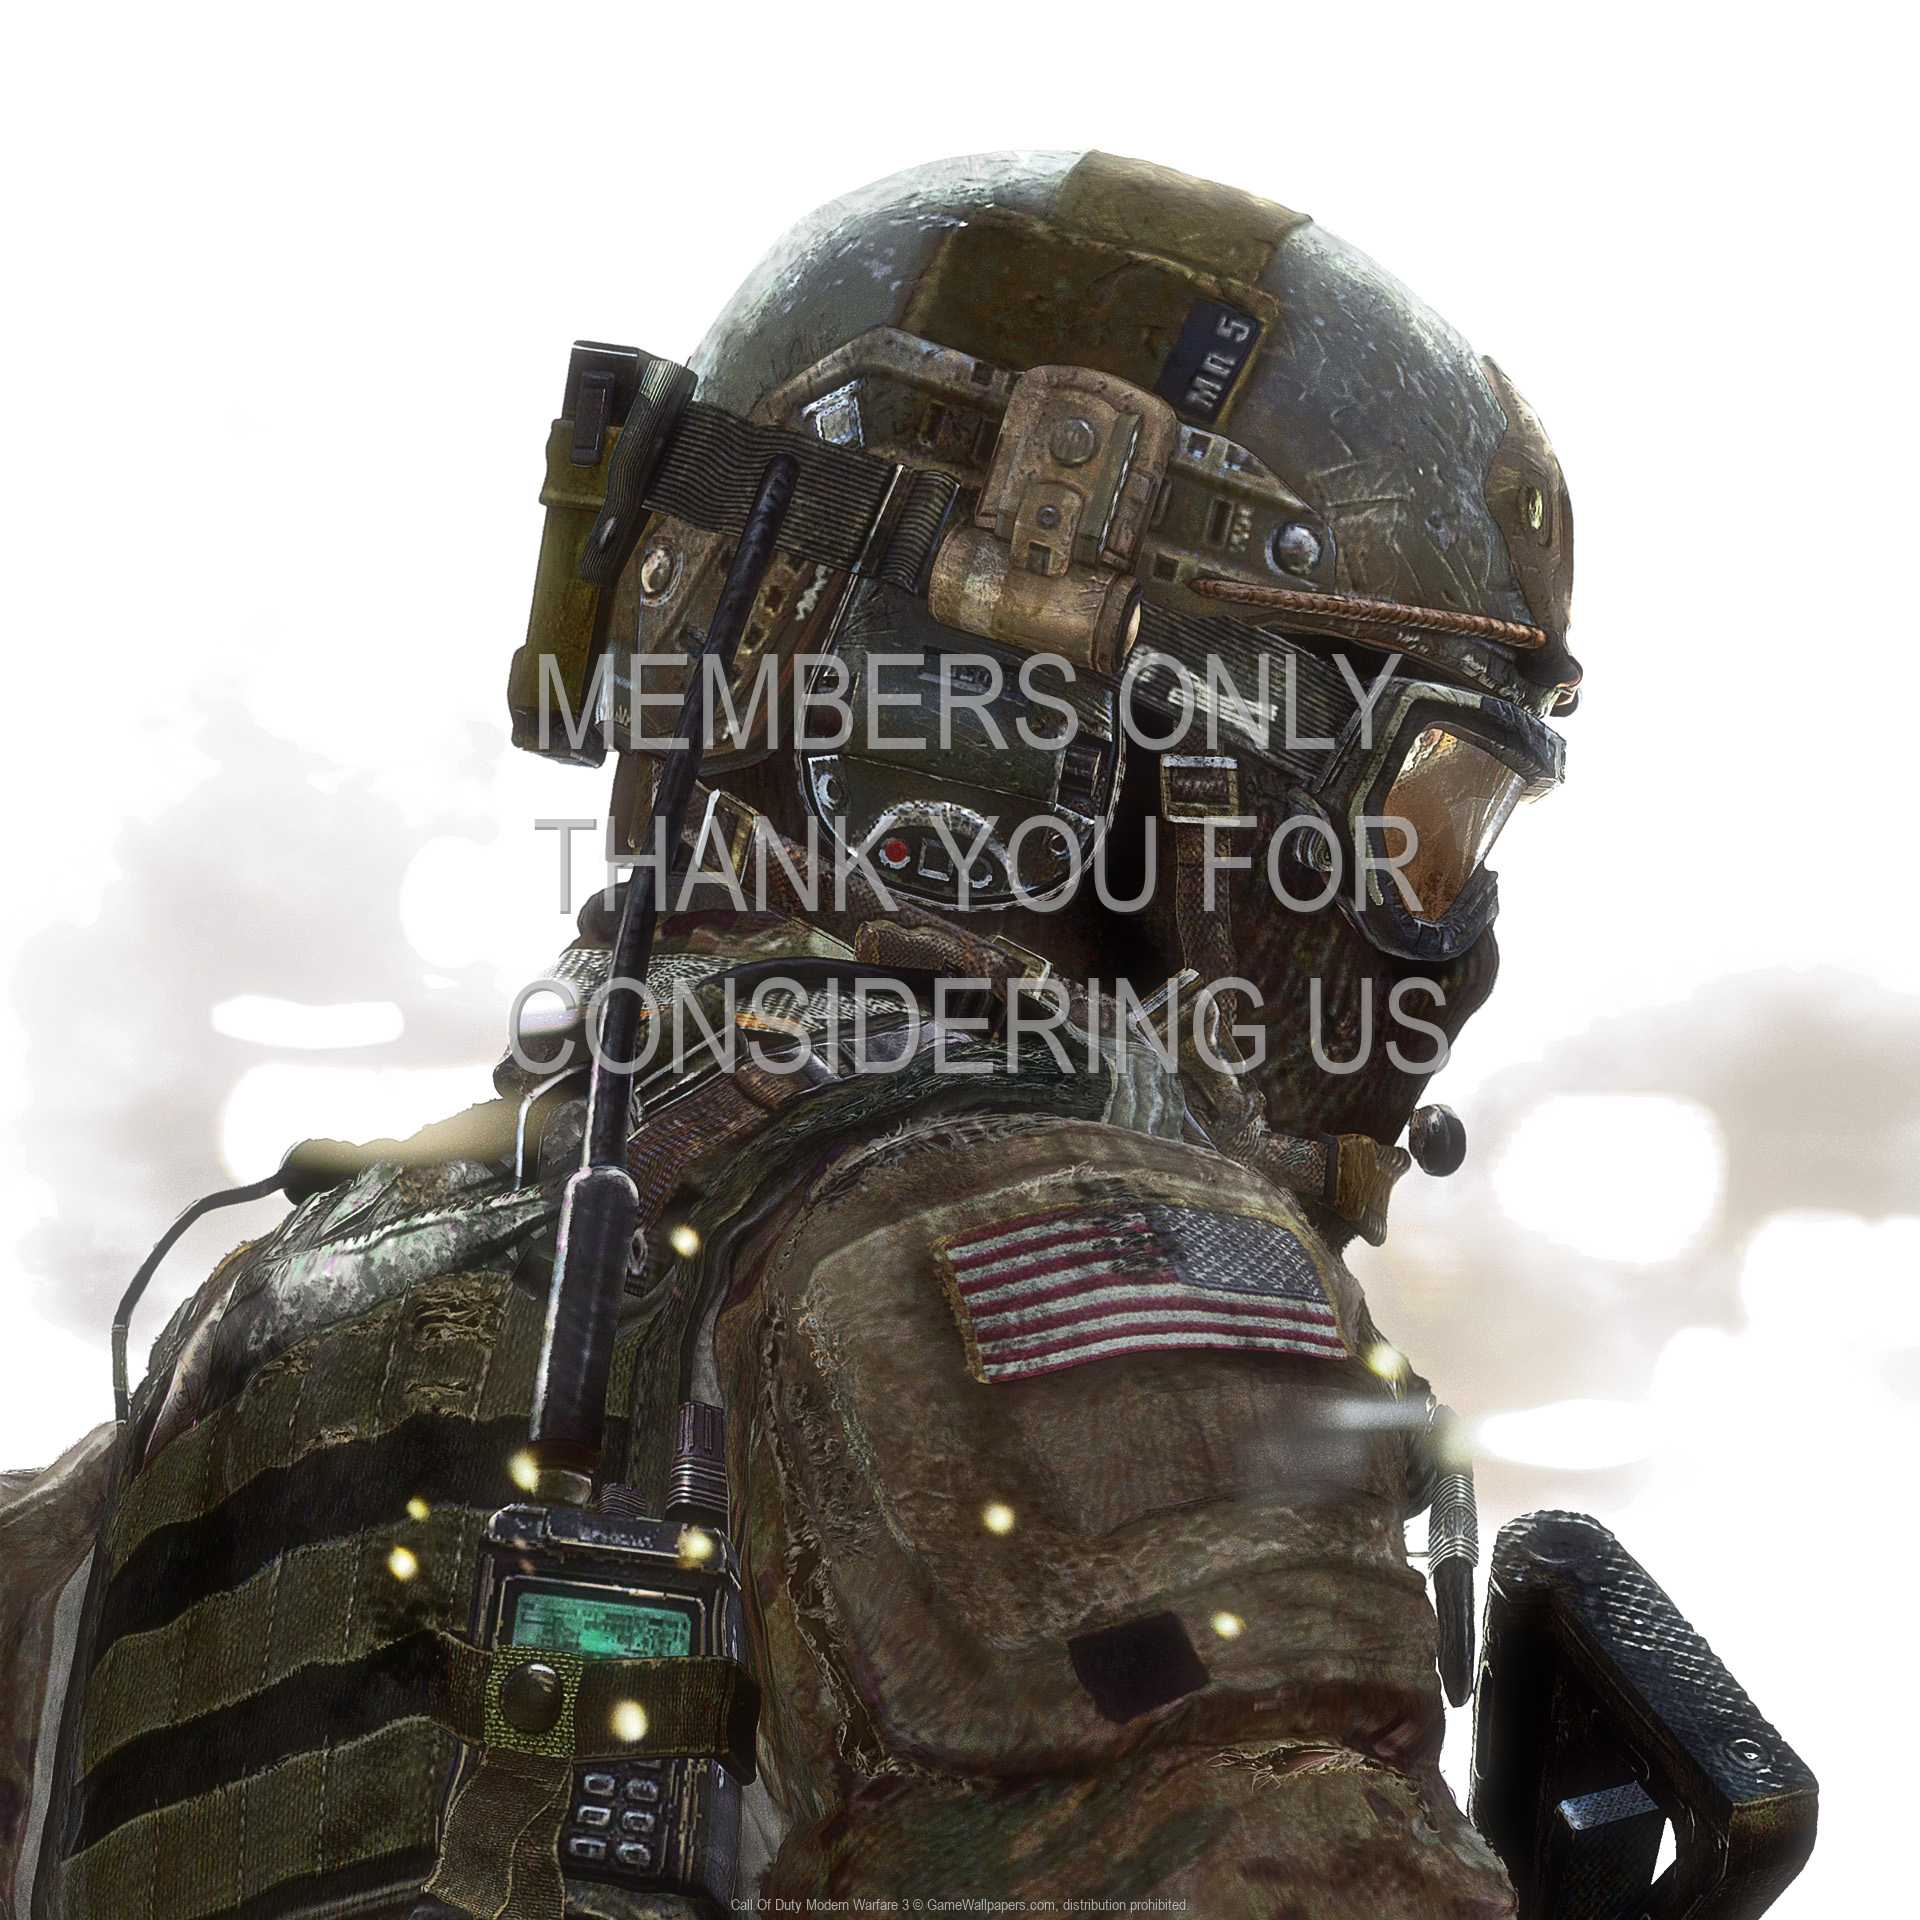 Call Of Duty: Modern Warfare 3 1080p Horizontal Mobile wallpaper or background 03